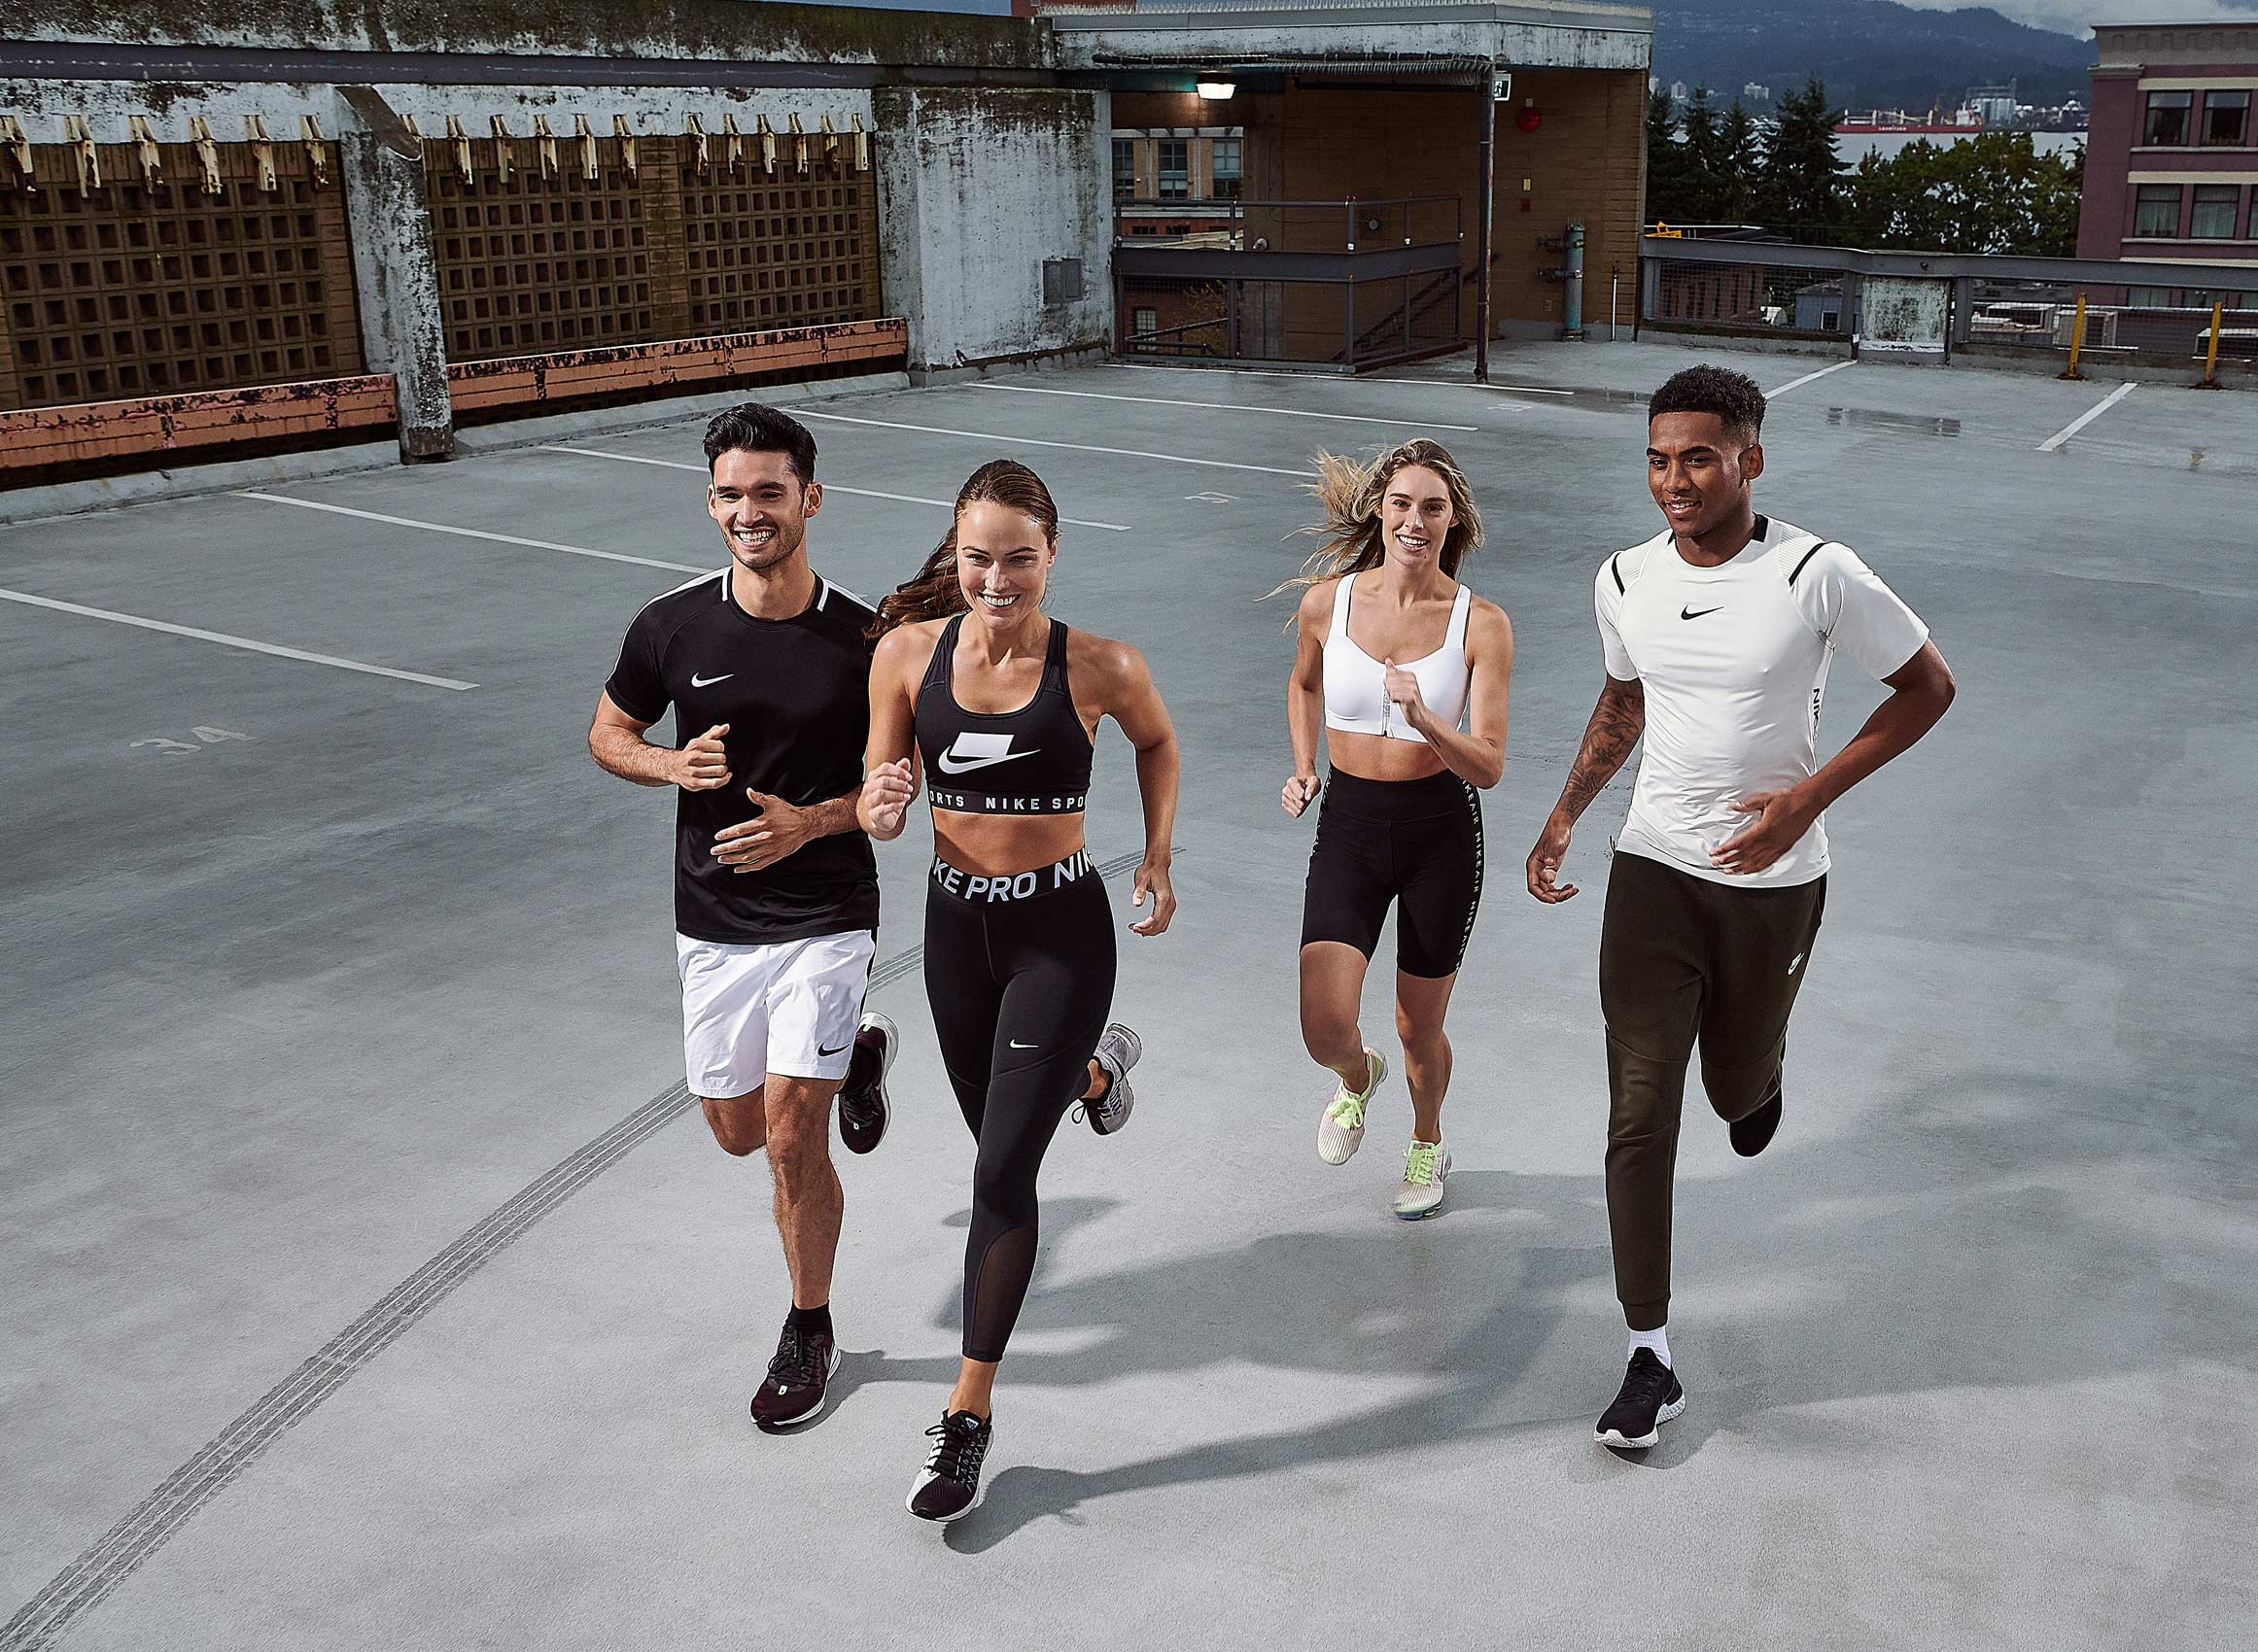 2020-Vancouver-LA-Fitness-Lifestyle-Advertising-Photographer-Erich-Saide-Advertising-Nike-Pro-Team-Running